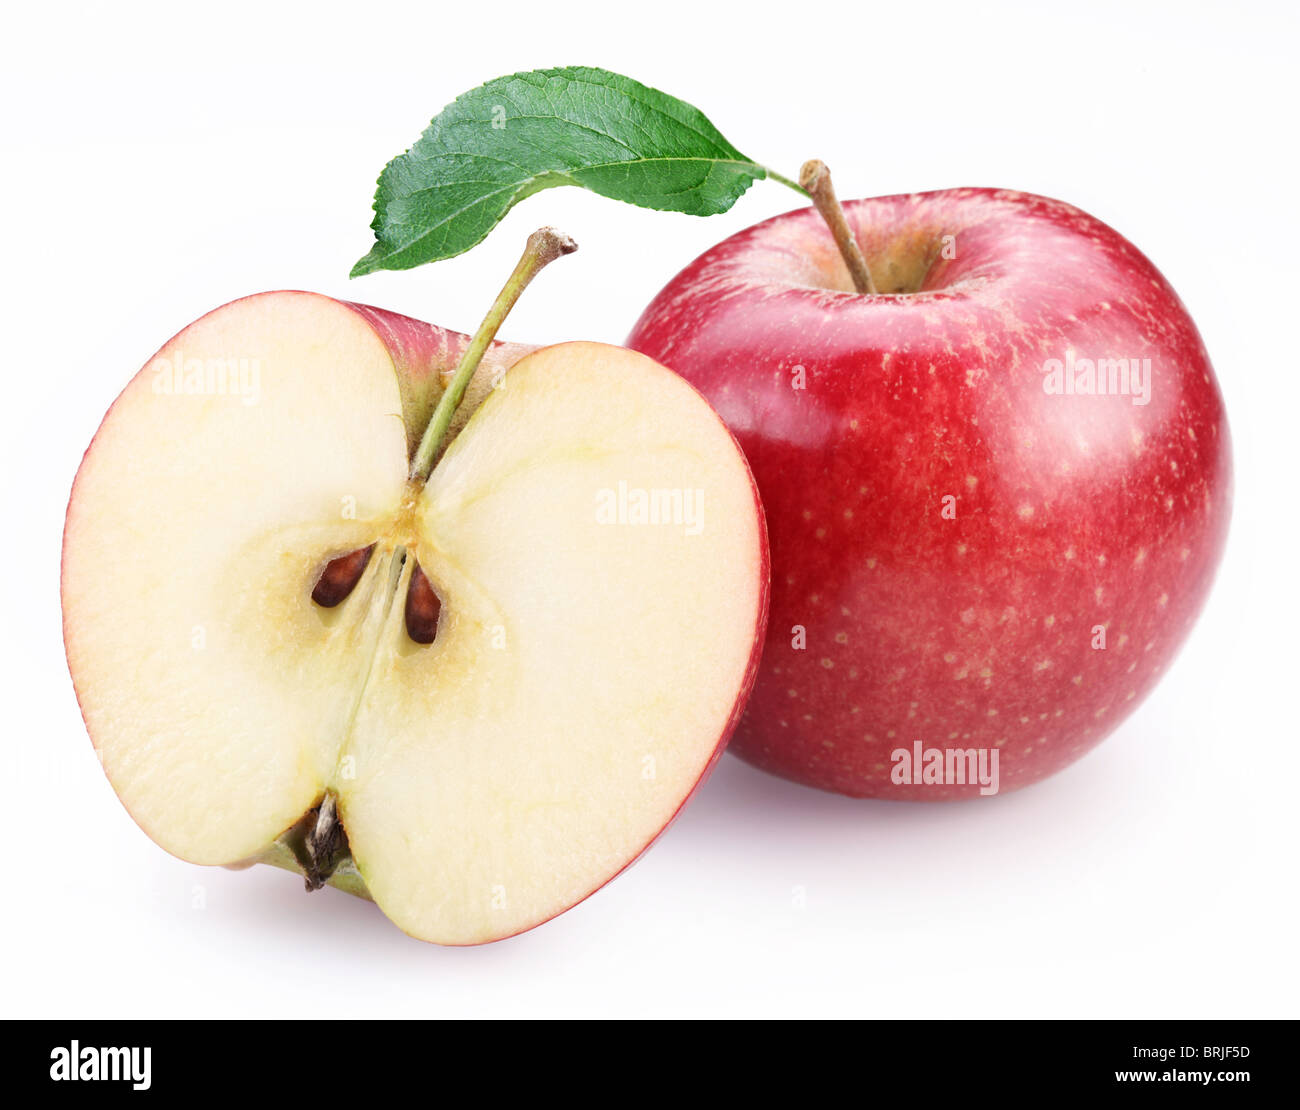 Red apple and half of red apple isolated on a white background. - Stock Image